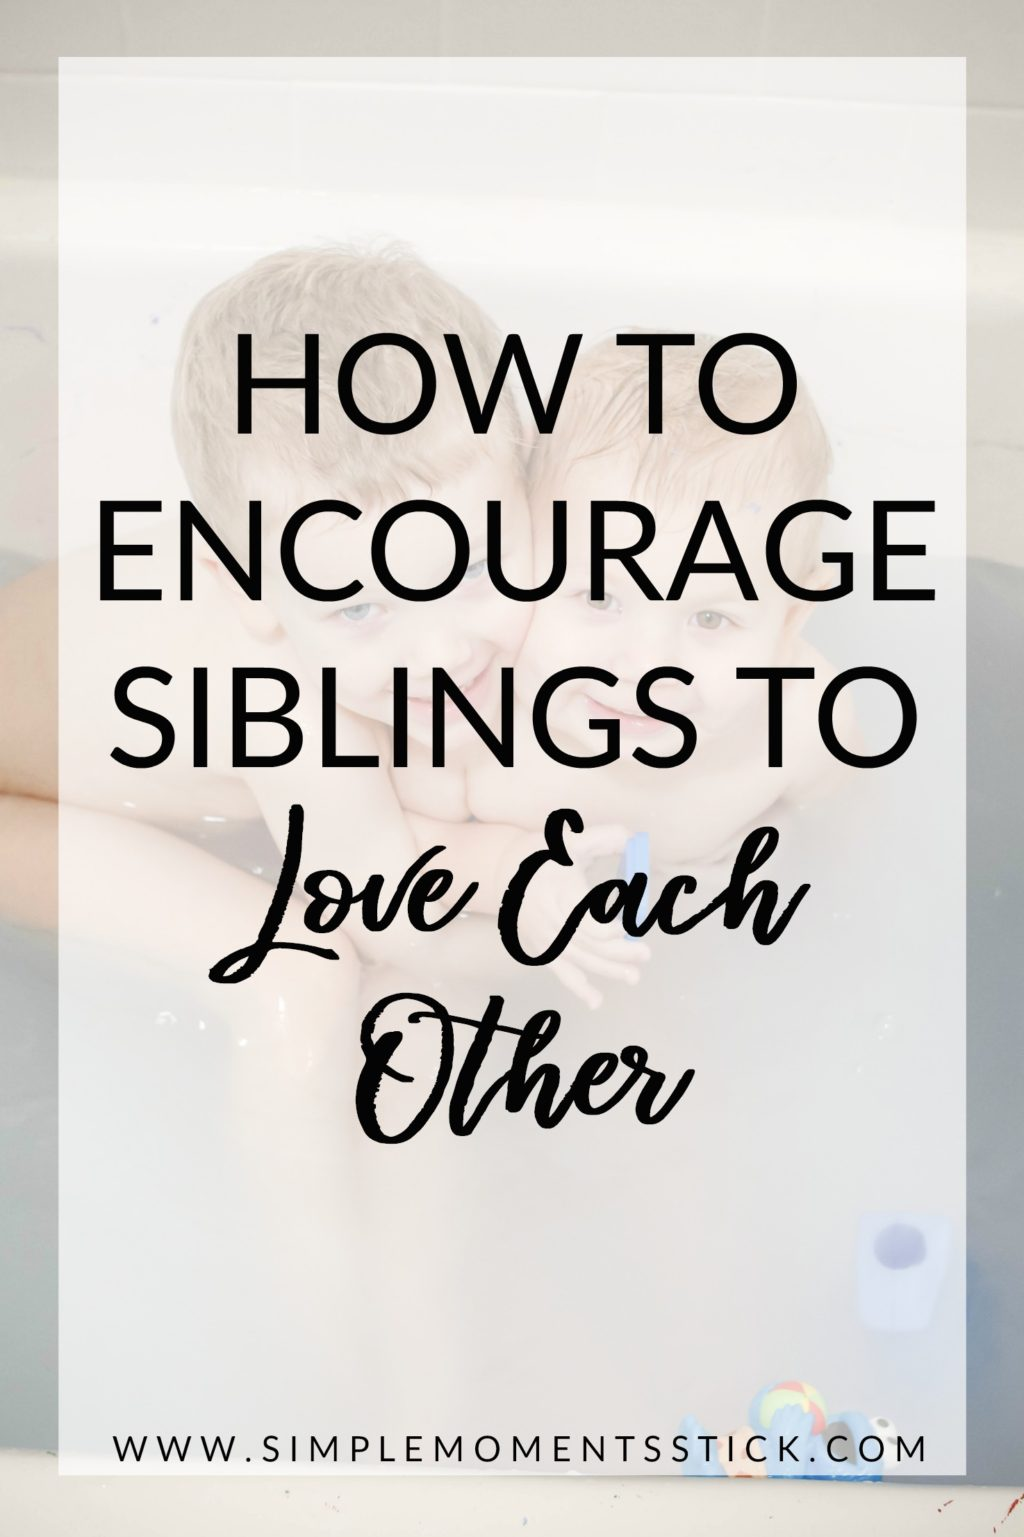 Ever wonder how to encourage siblings to love each other? It really is the age old question! We're working hard on raising brothers to be best friends but it's definitely tough! Keep reading to find out some great ideas on how to foster sibling friendship.